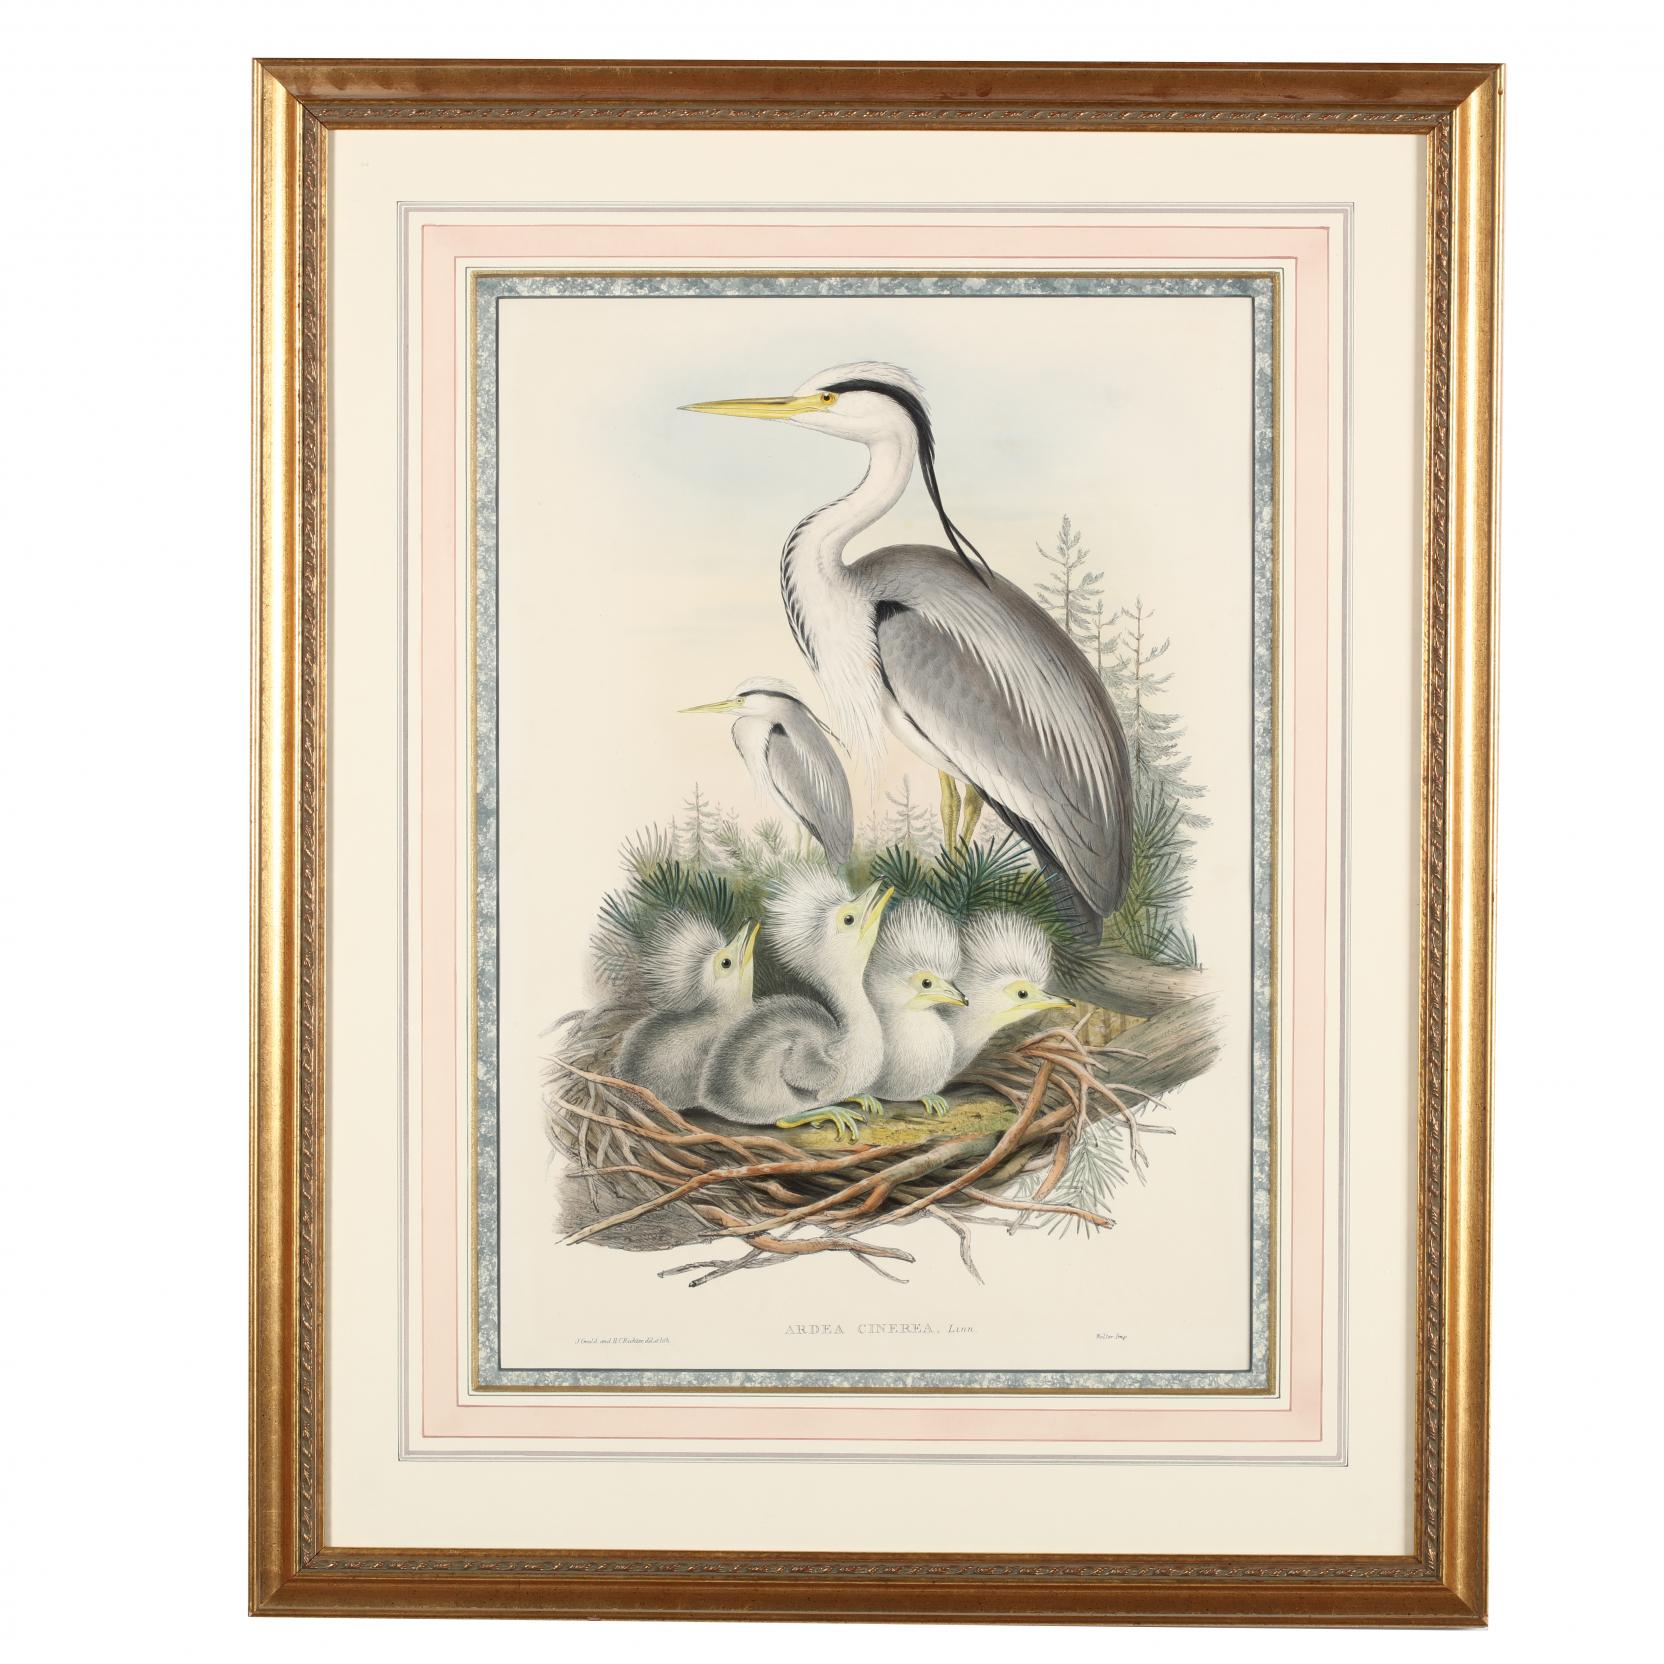 j-gould-h-c-richter-19th-century-ardea-cinerea-grey-heron